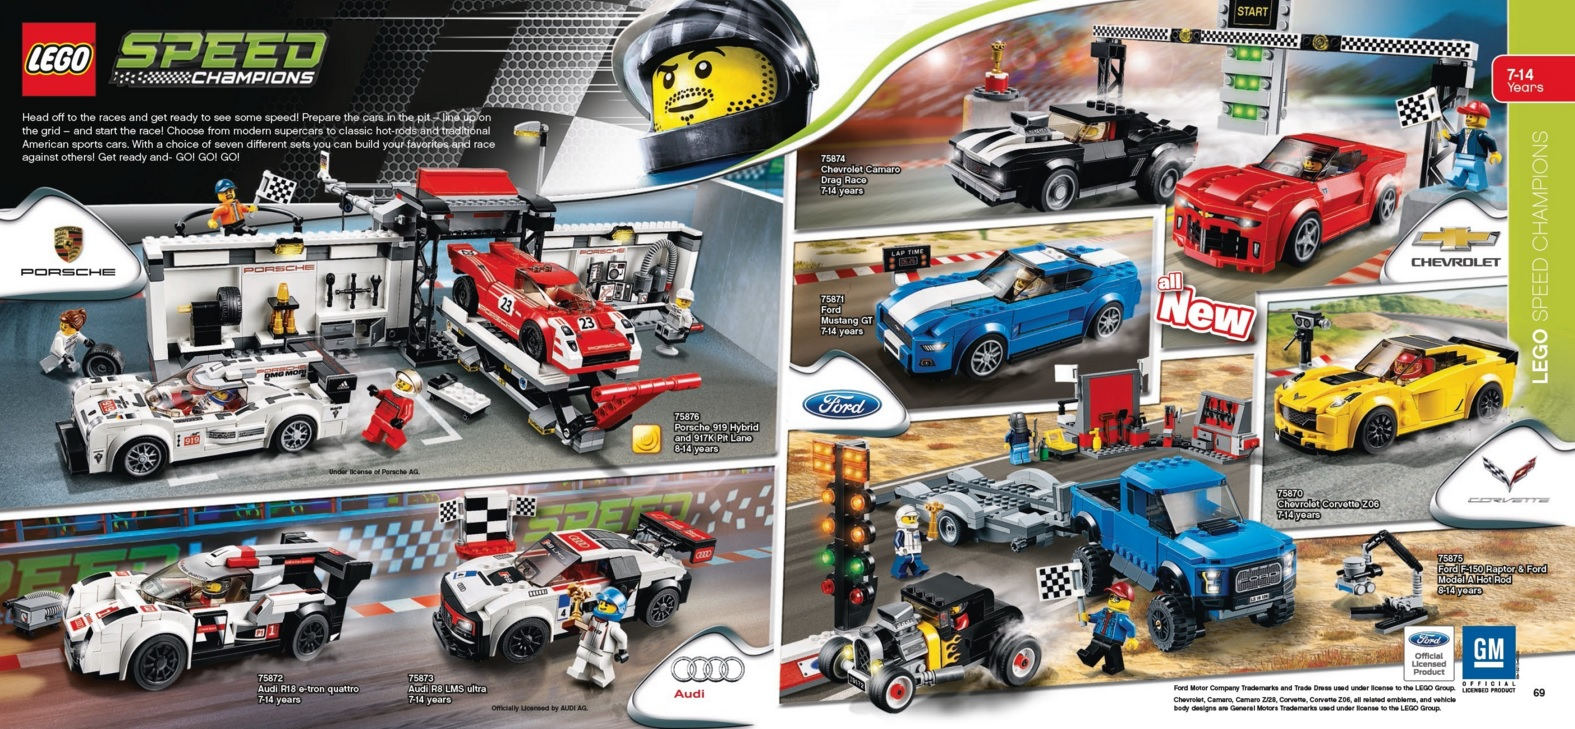 Australian Lego Release Dates First Half Of 2016 Sets January May 75873 Speed Champions Audi R8 Lms Ultra Catalogue Ford Chevrolet